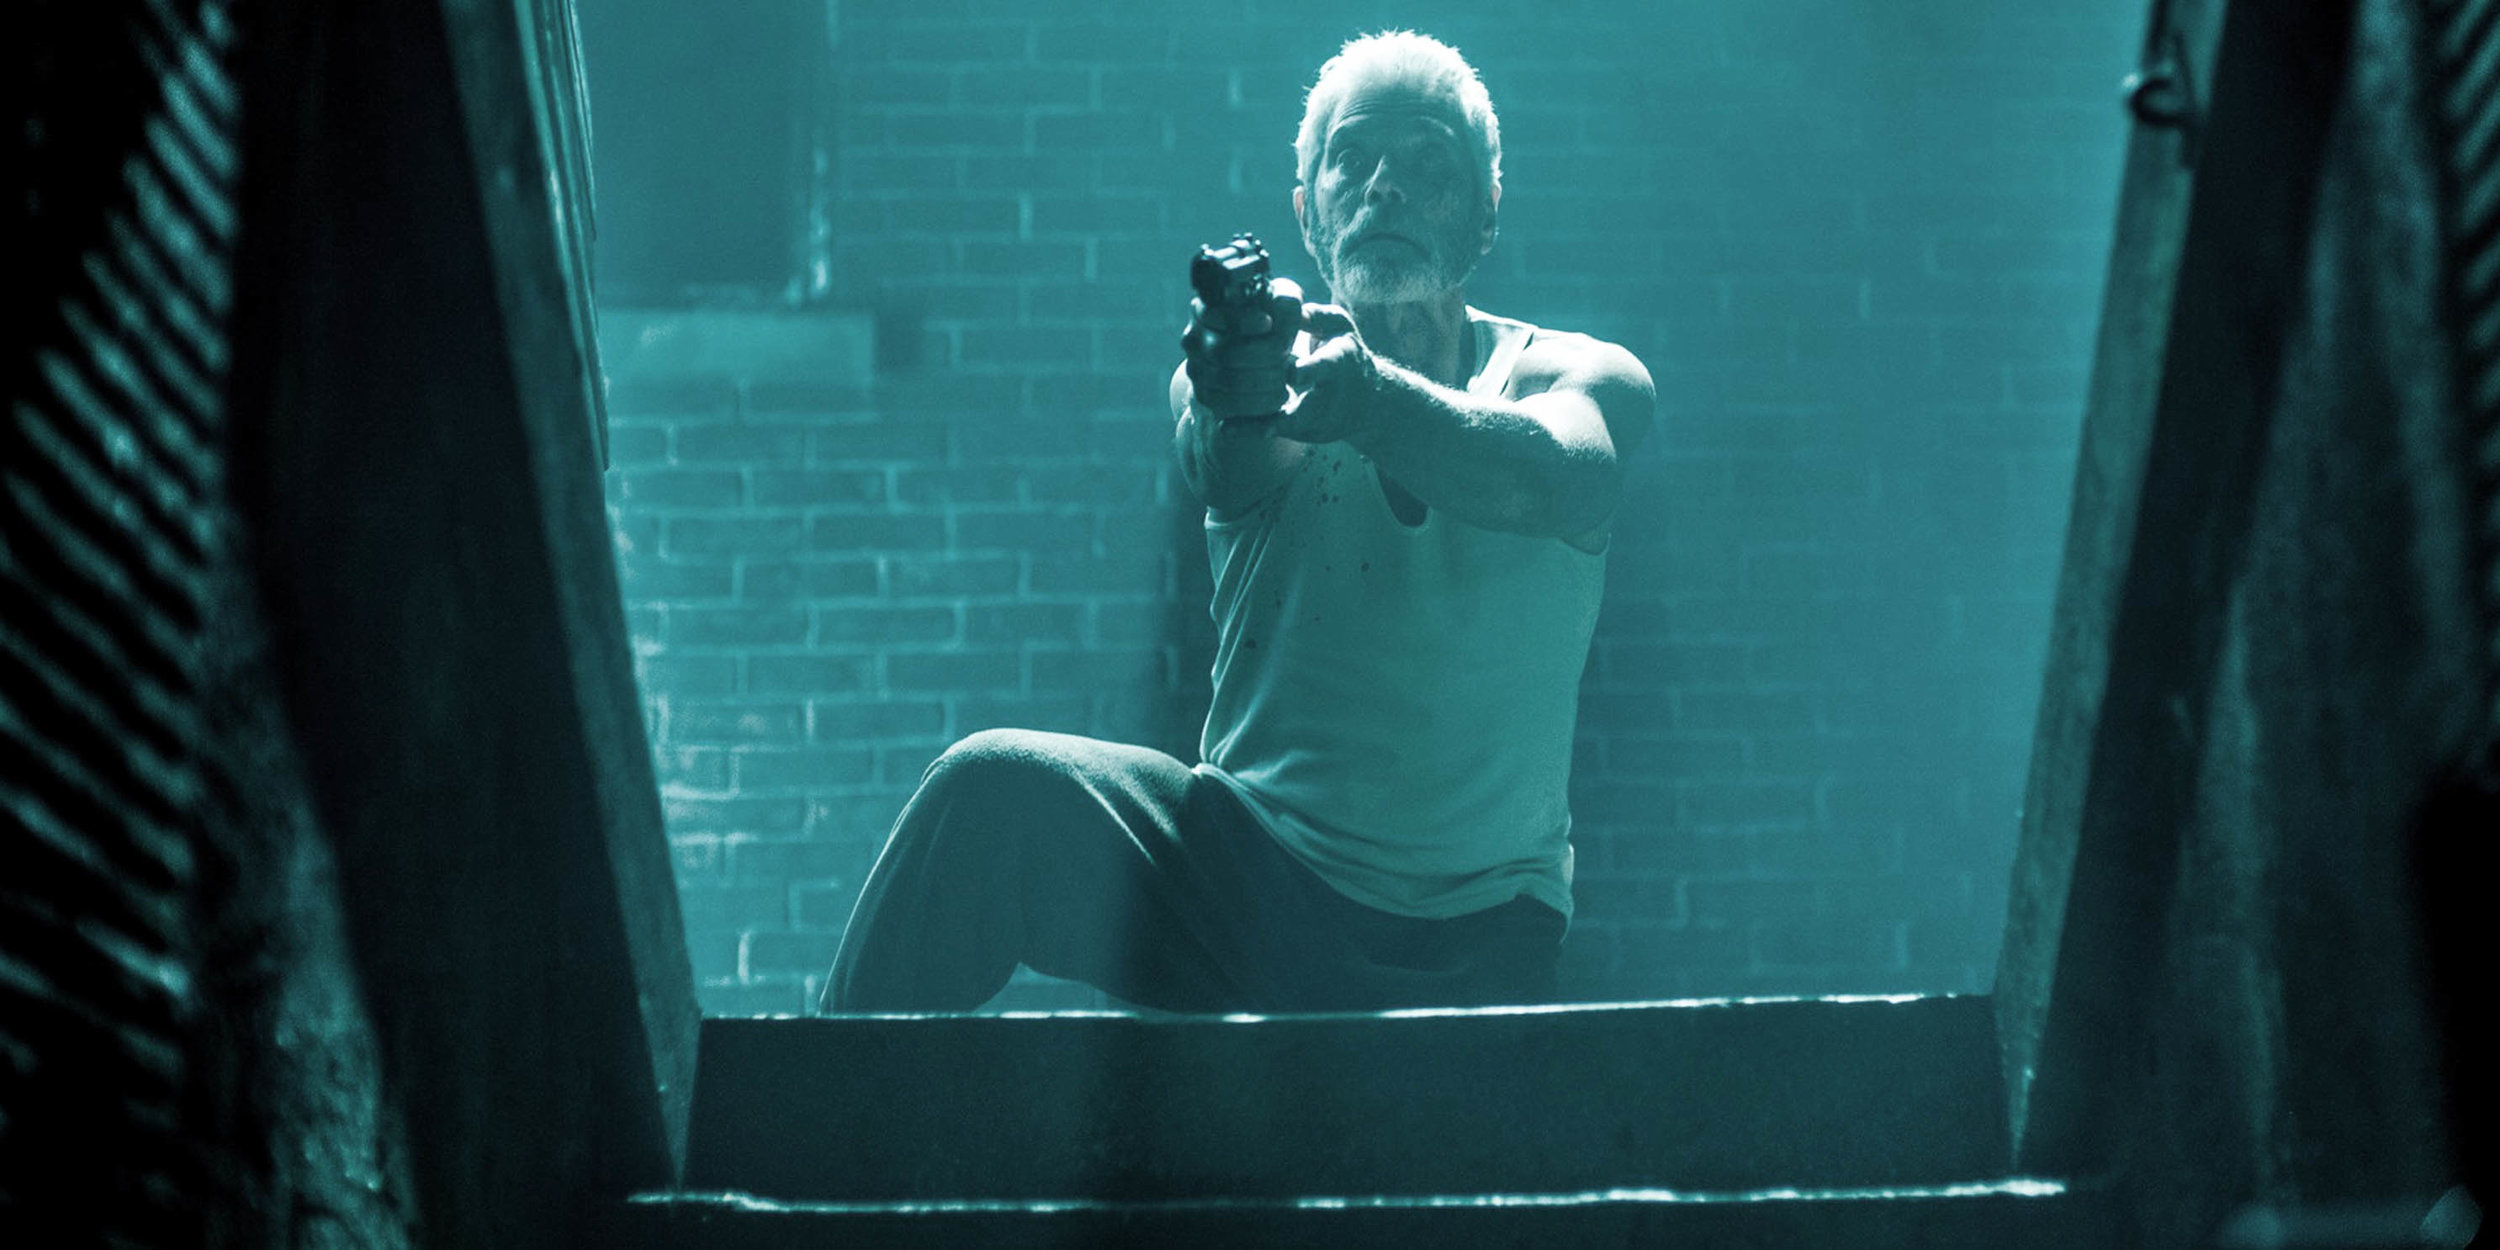 Don't Breathe a horror film by Fede Alvarez courtesy of Sony Pictures